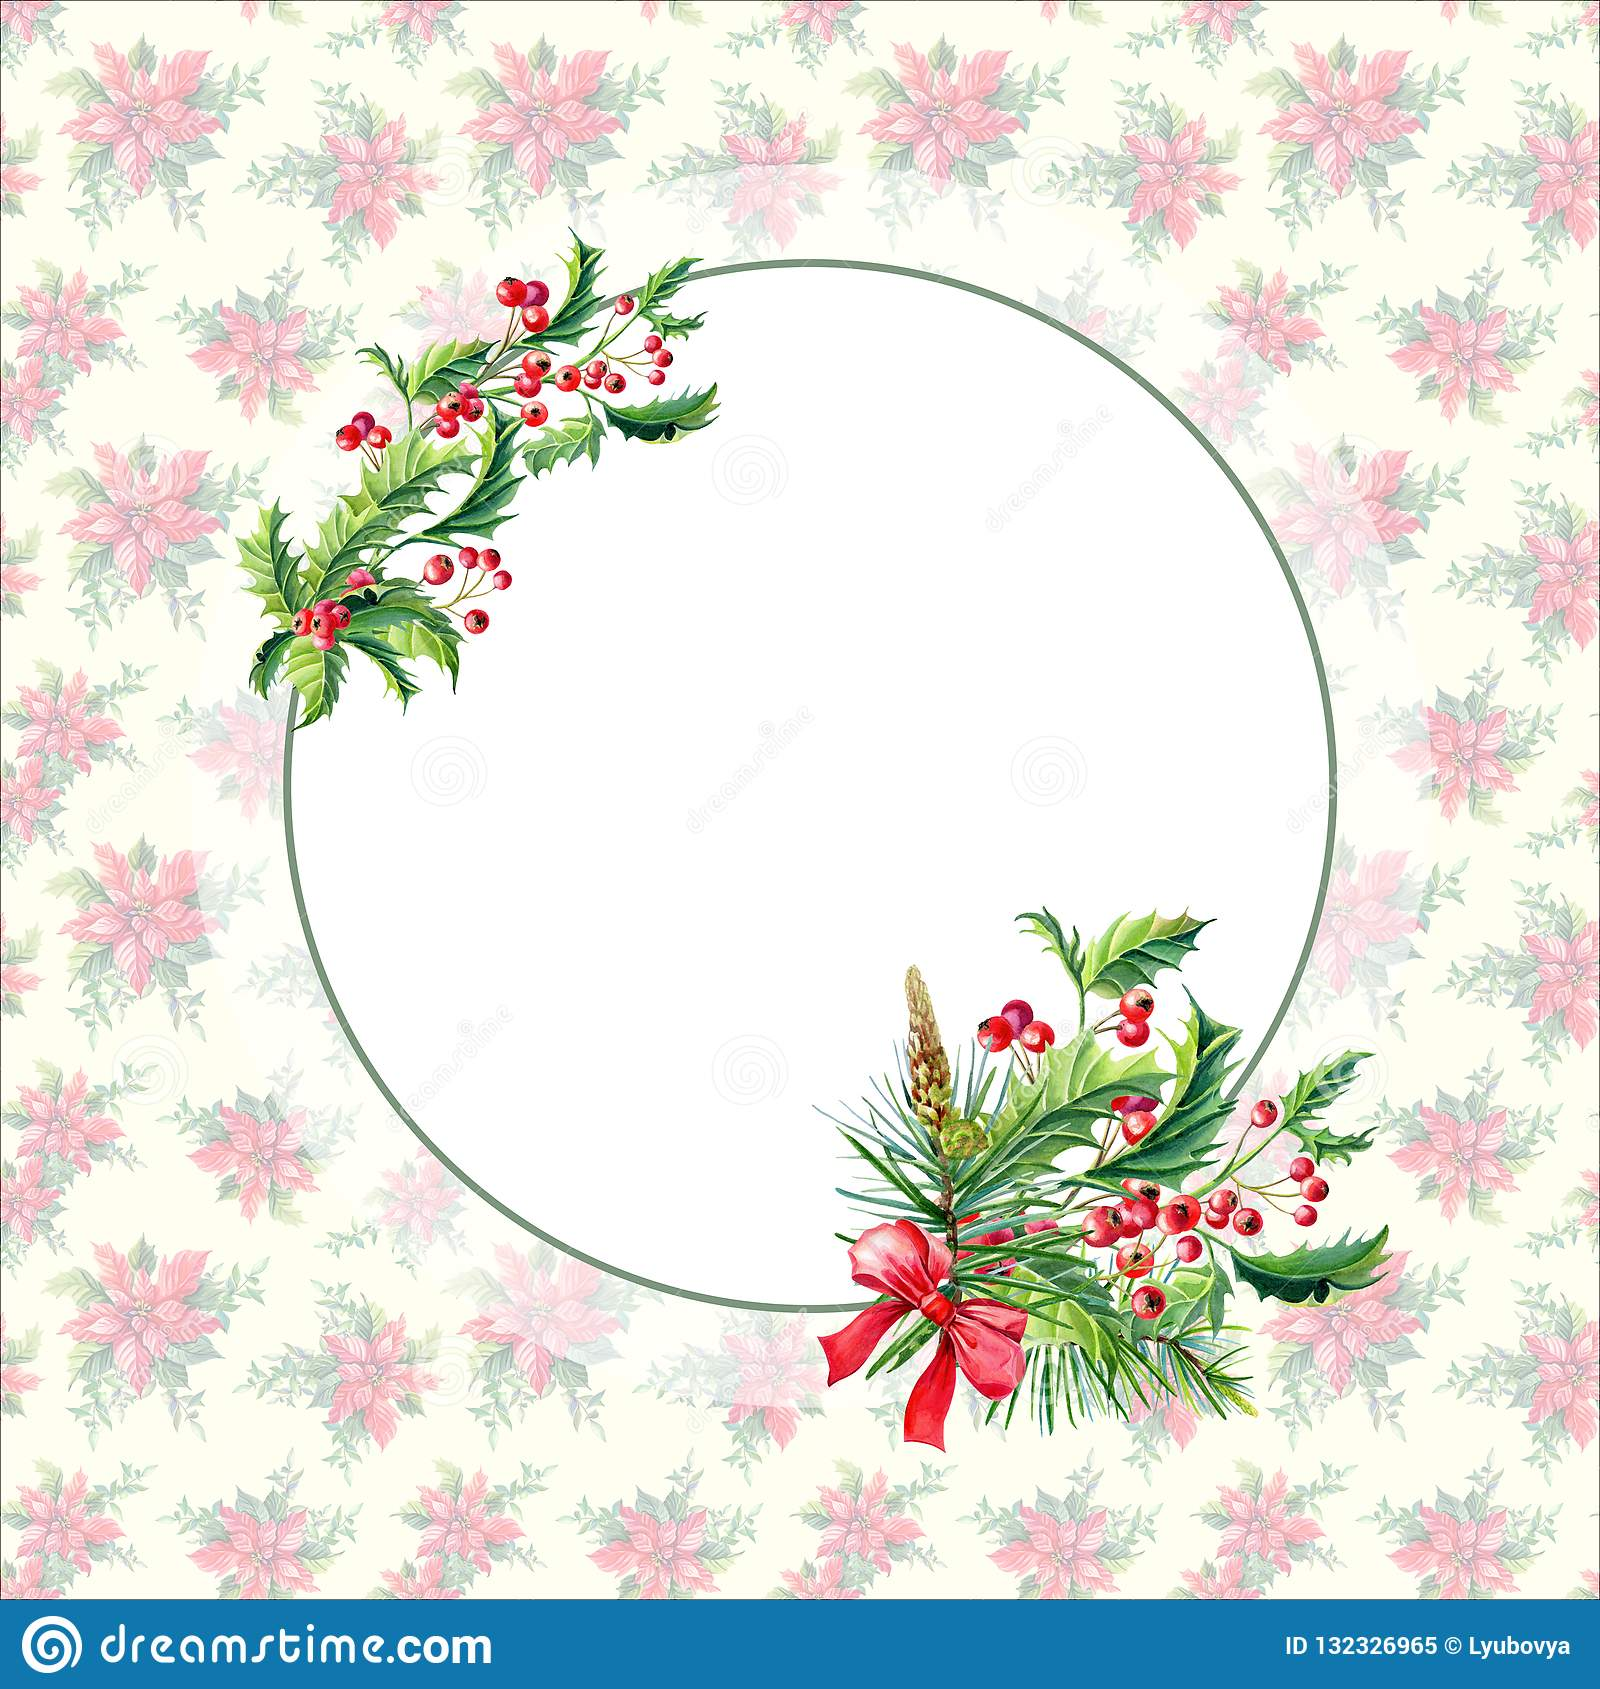 Watercolor Merry Christmas Frame with Holly,leaves,Red berries,pine,spruce,bow on vintage background.New